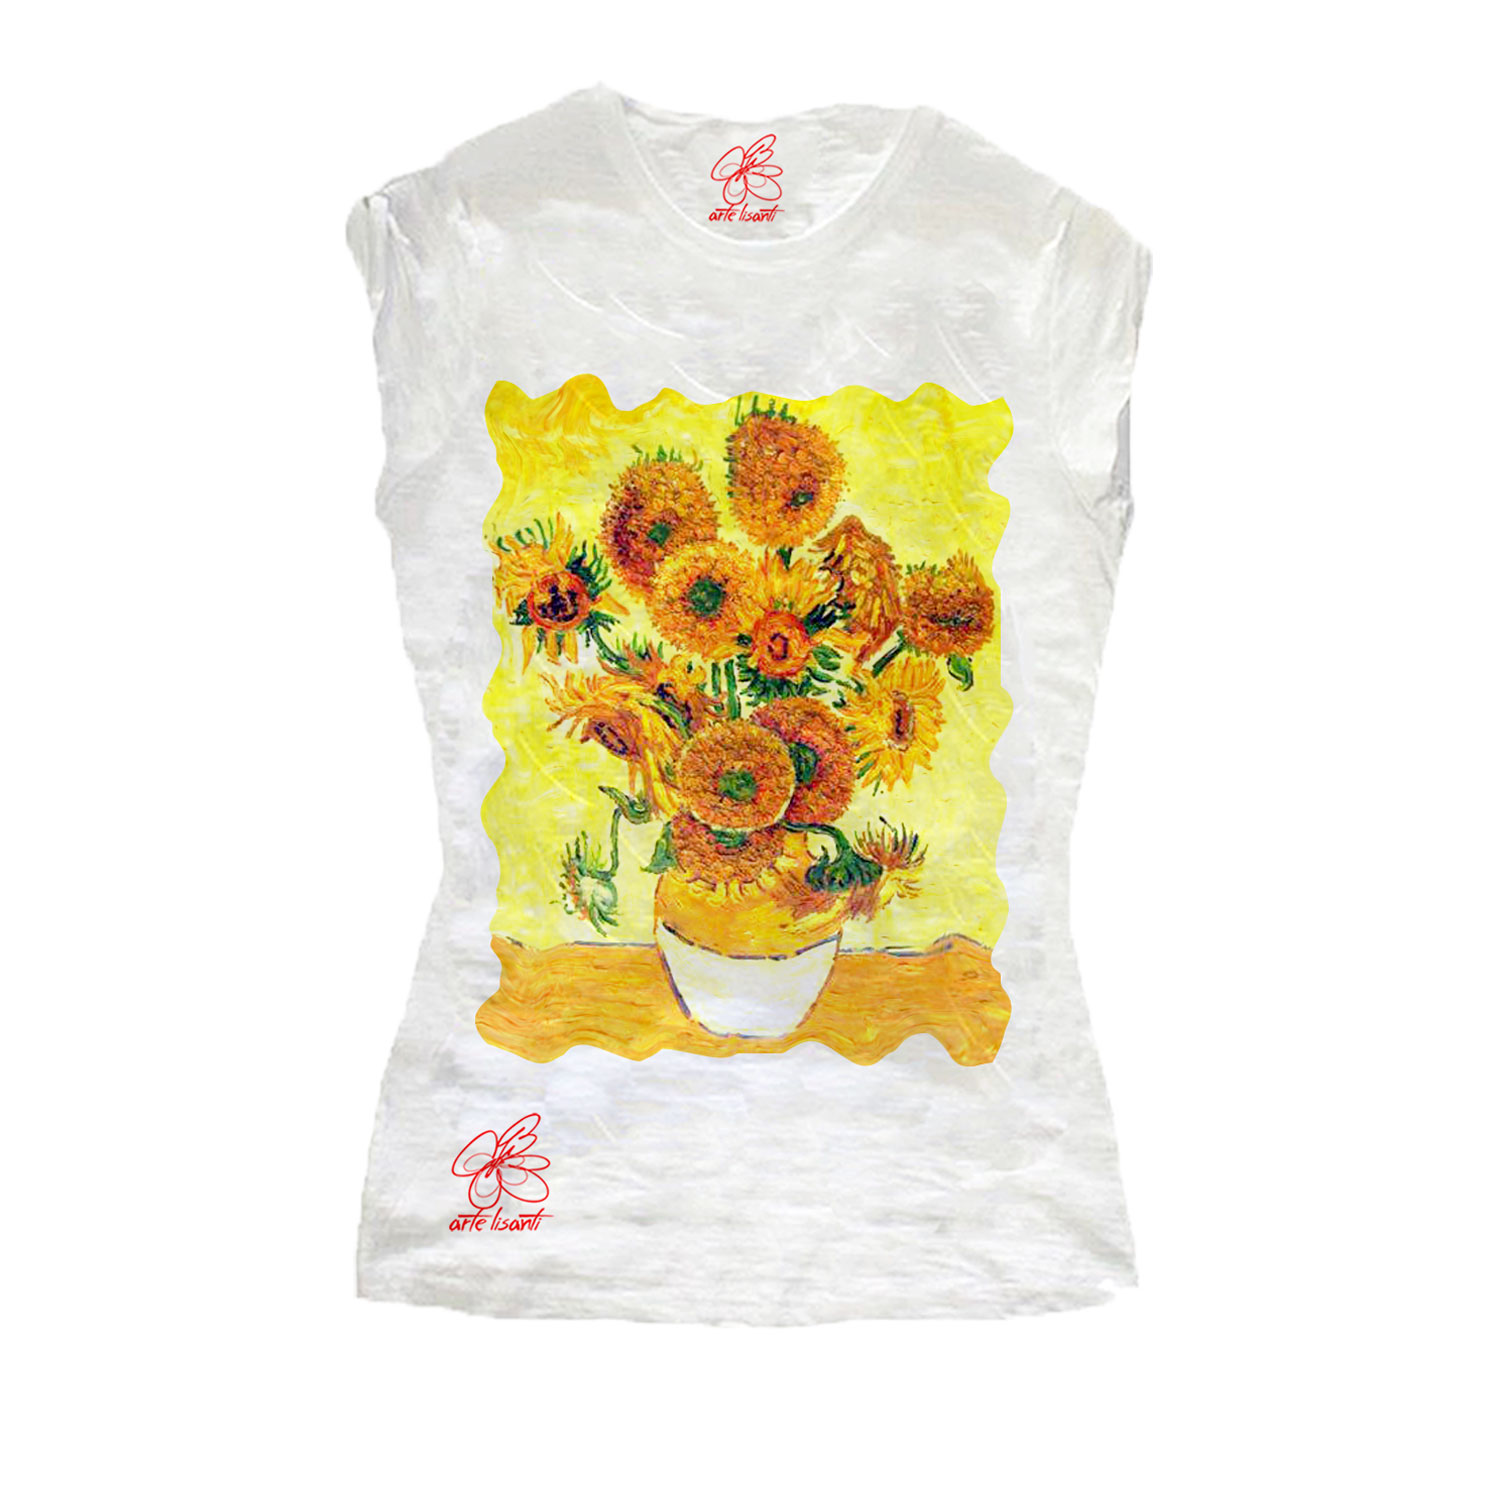 Hand-painted T-shirts - Sunflowers by Van Gogh